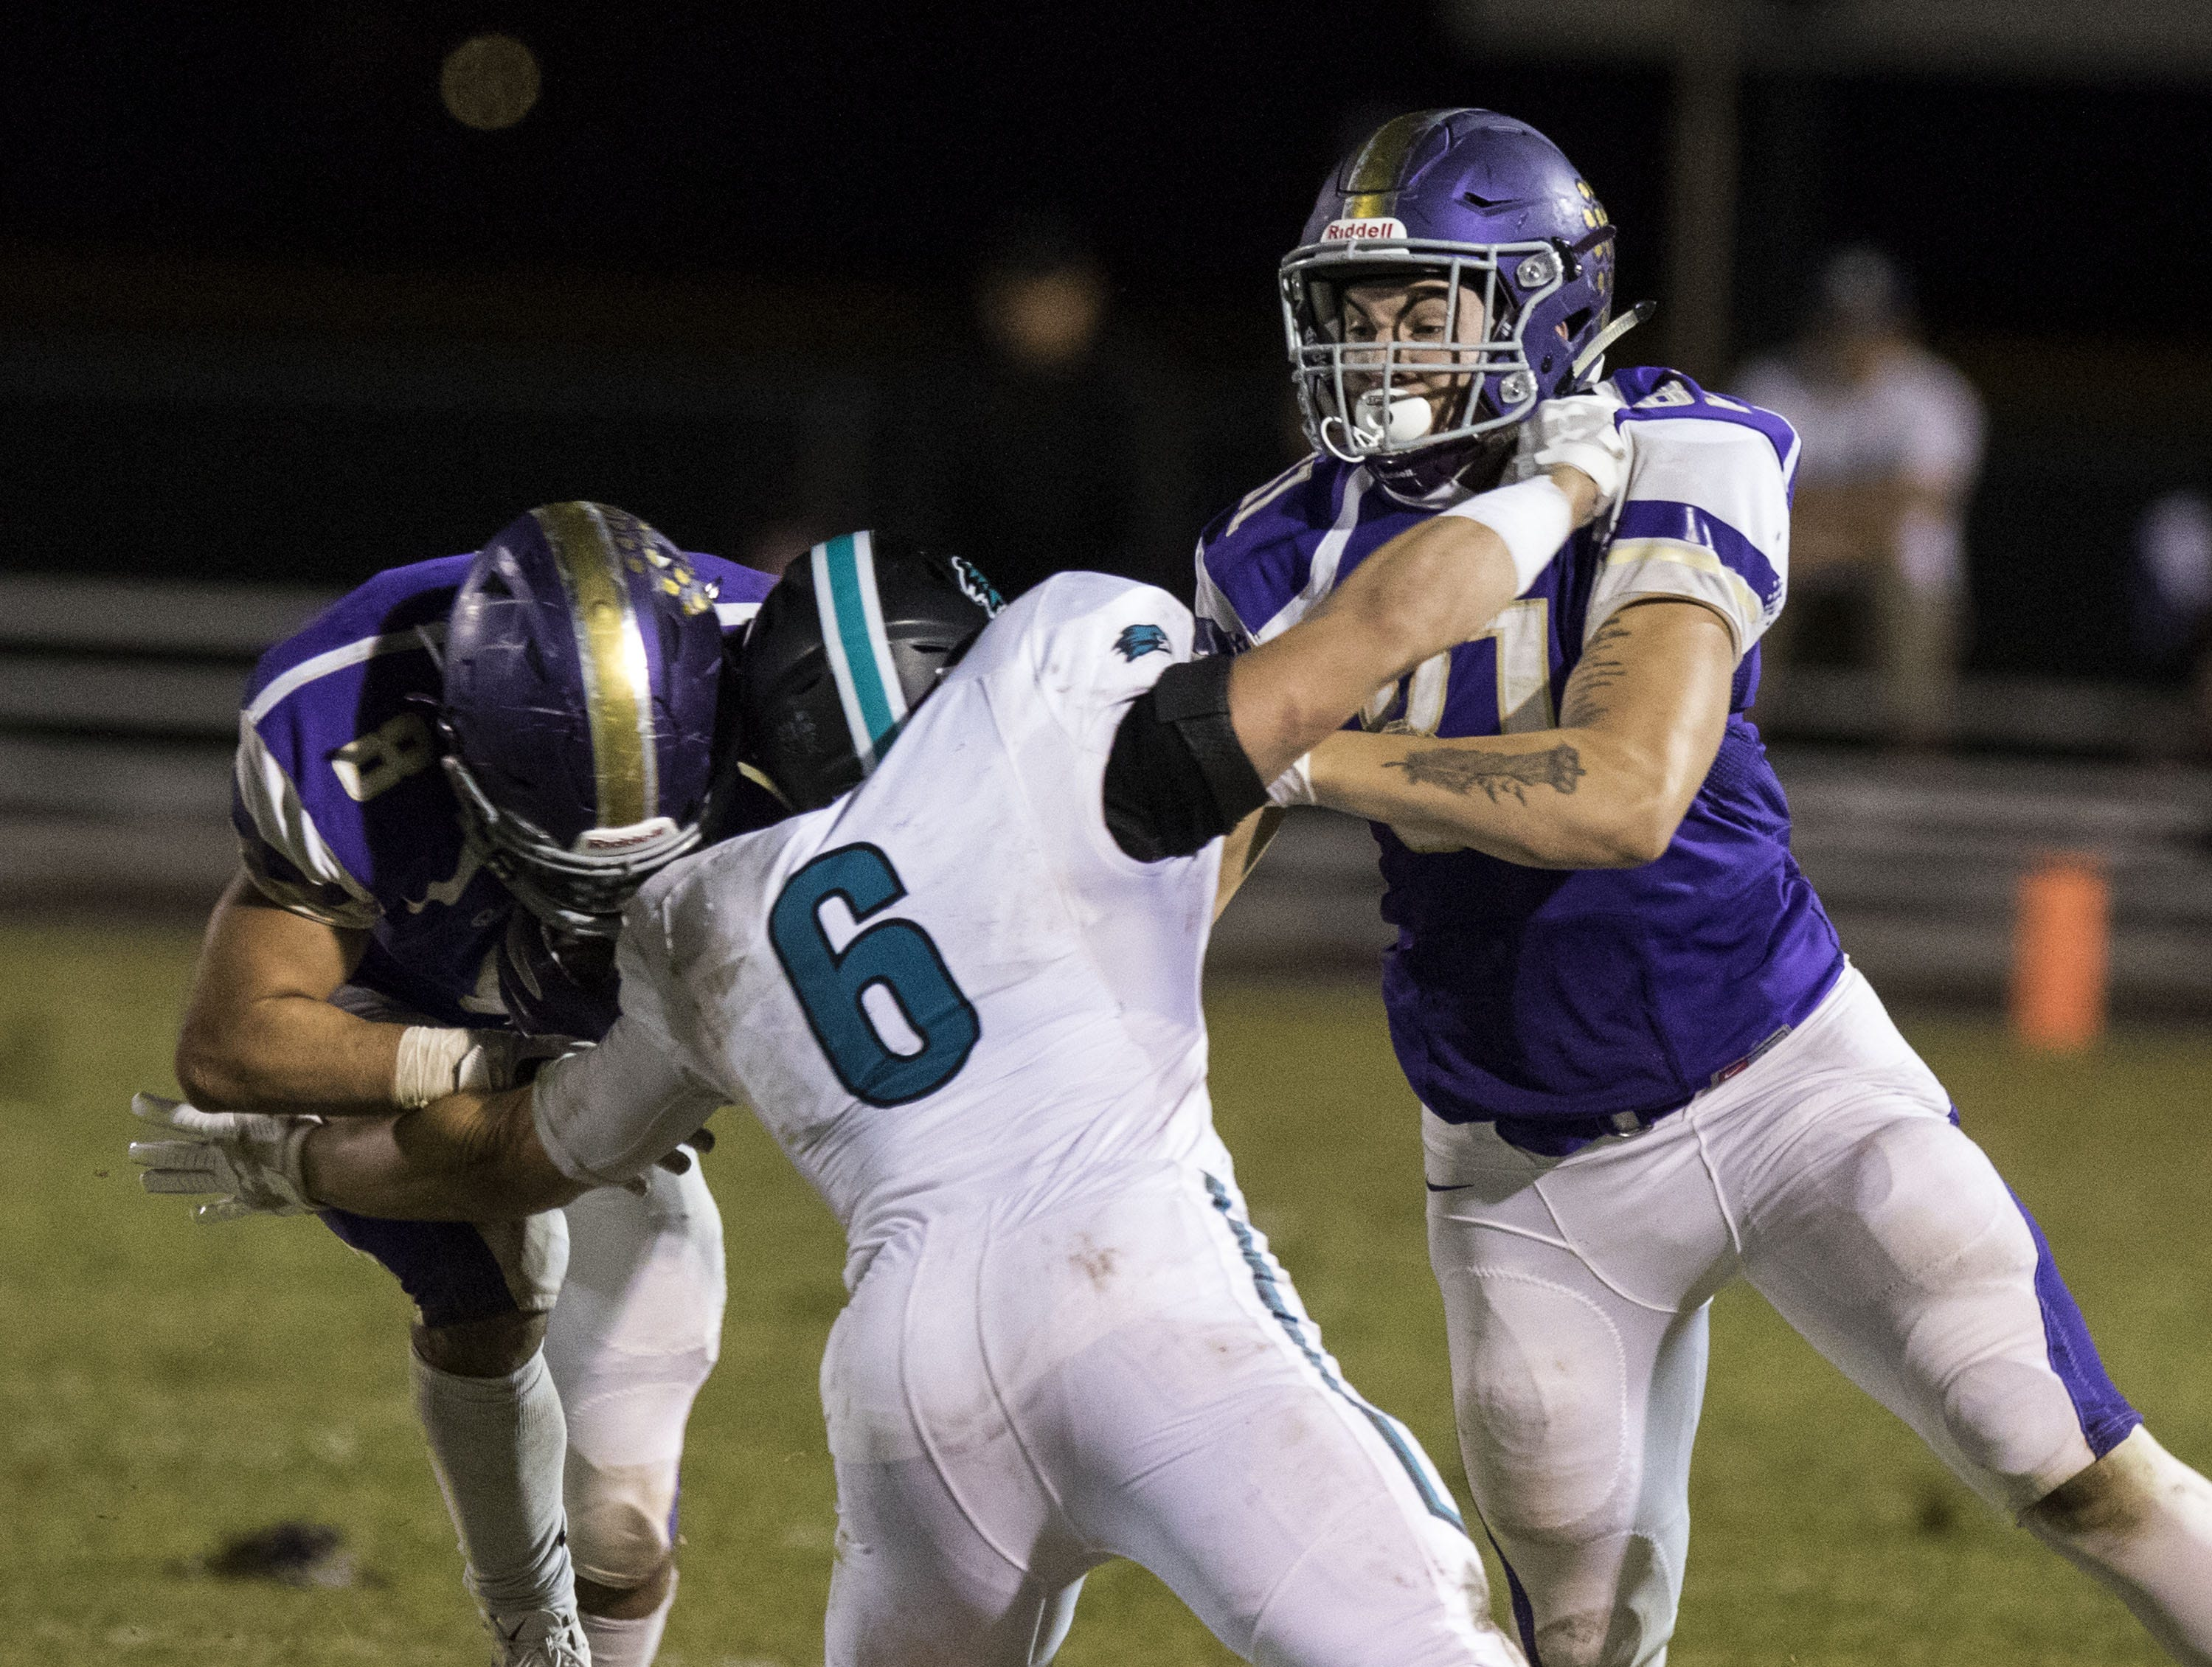 Highland's Daniel Wood gets blocks and makes a tackle at the same time against Queen Creek's Dylan Borja during their game in Queen Creek Friday, Oct. 19, 2018. #azhsfb